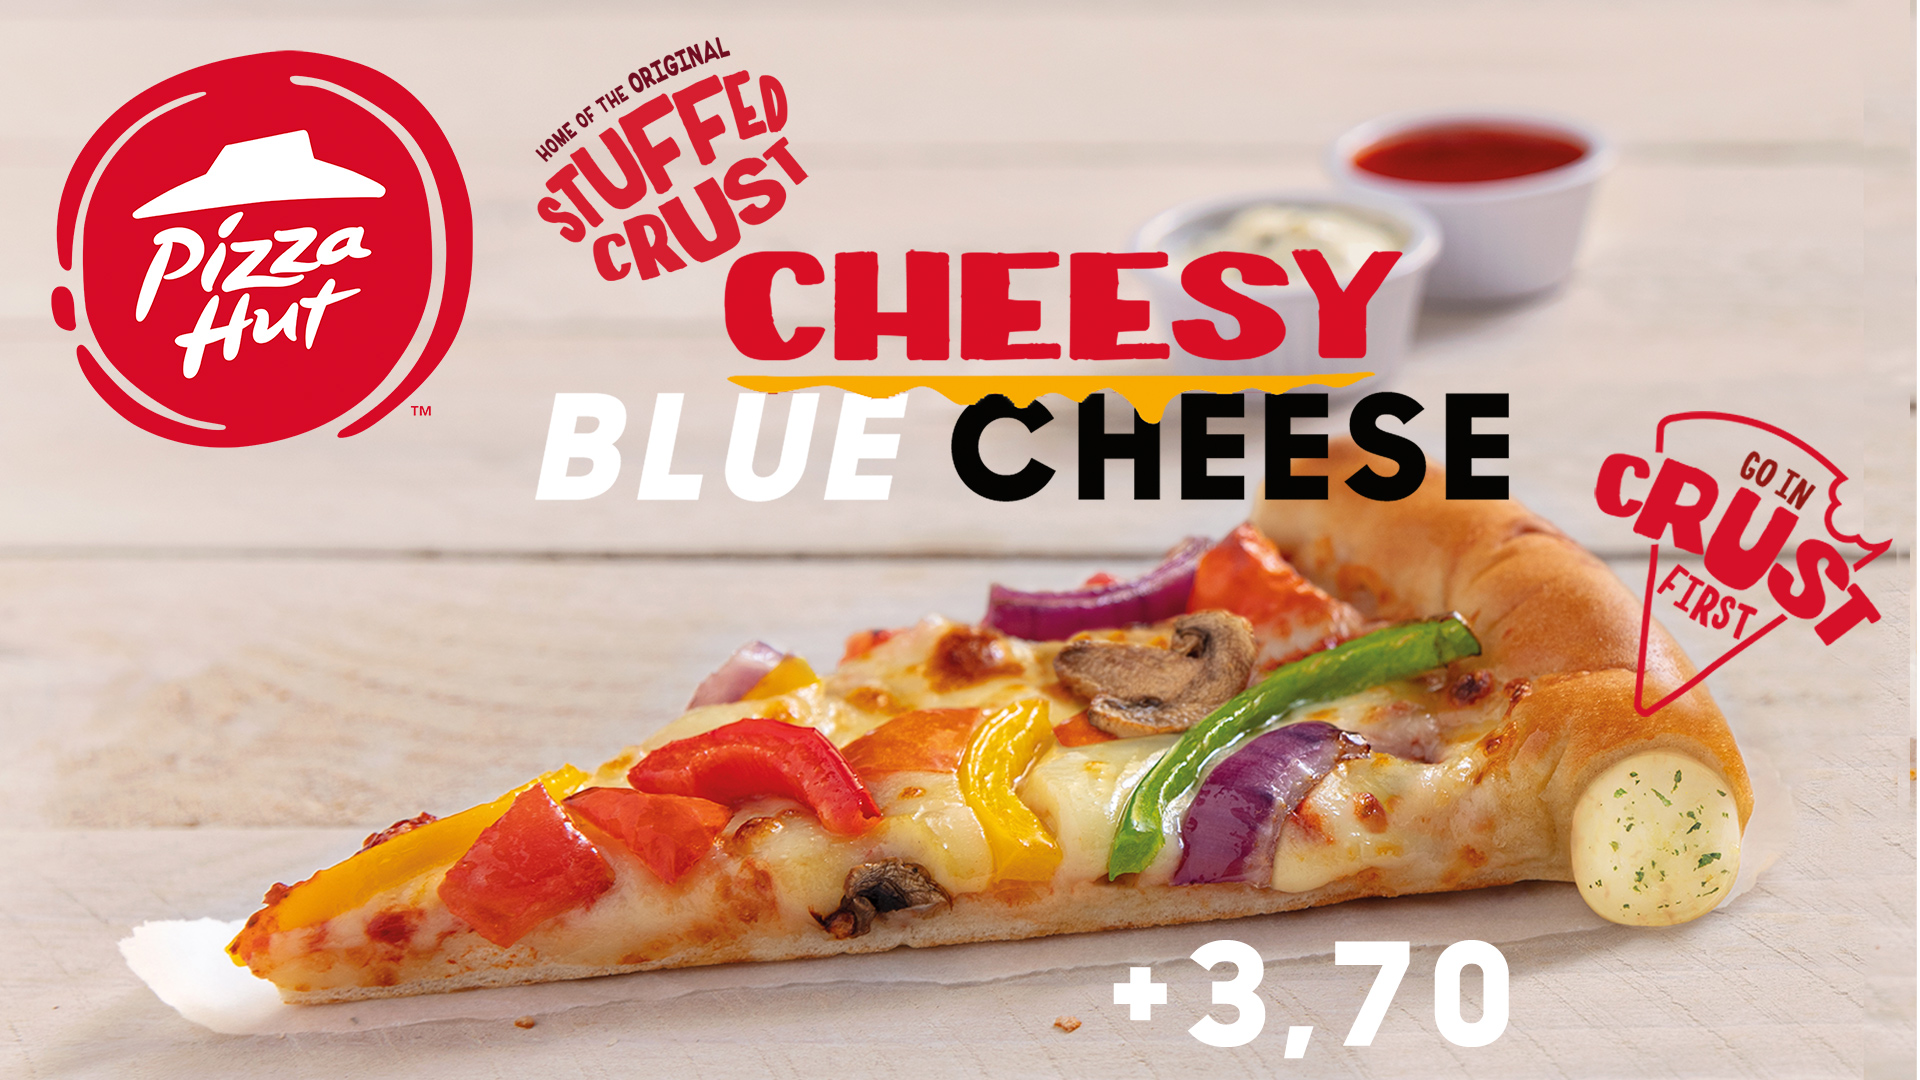 STUFFED CHEESY CRUST BLUE CHEESE